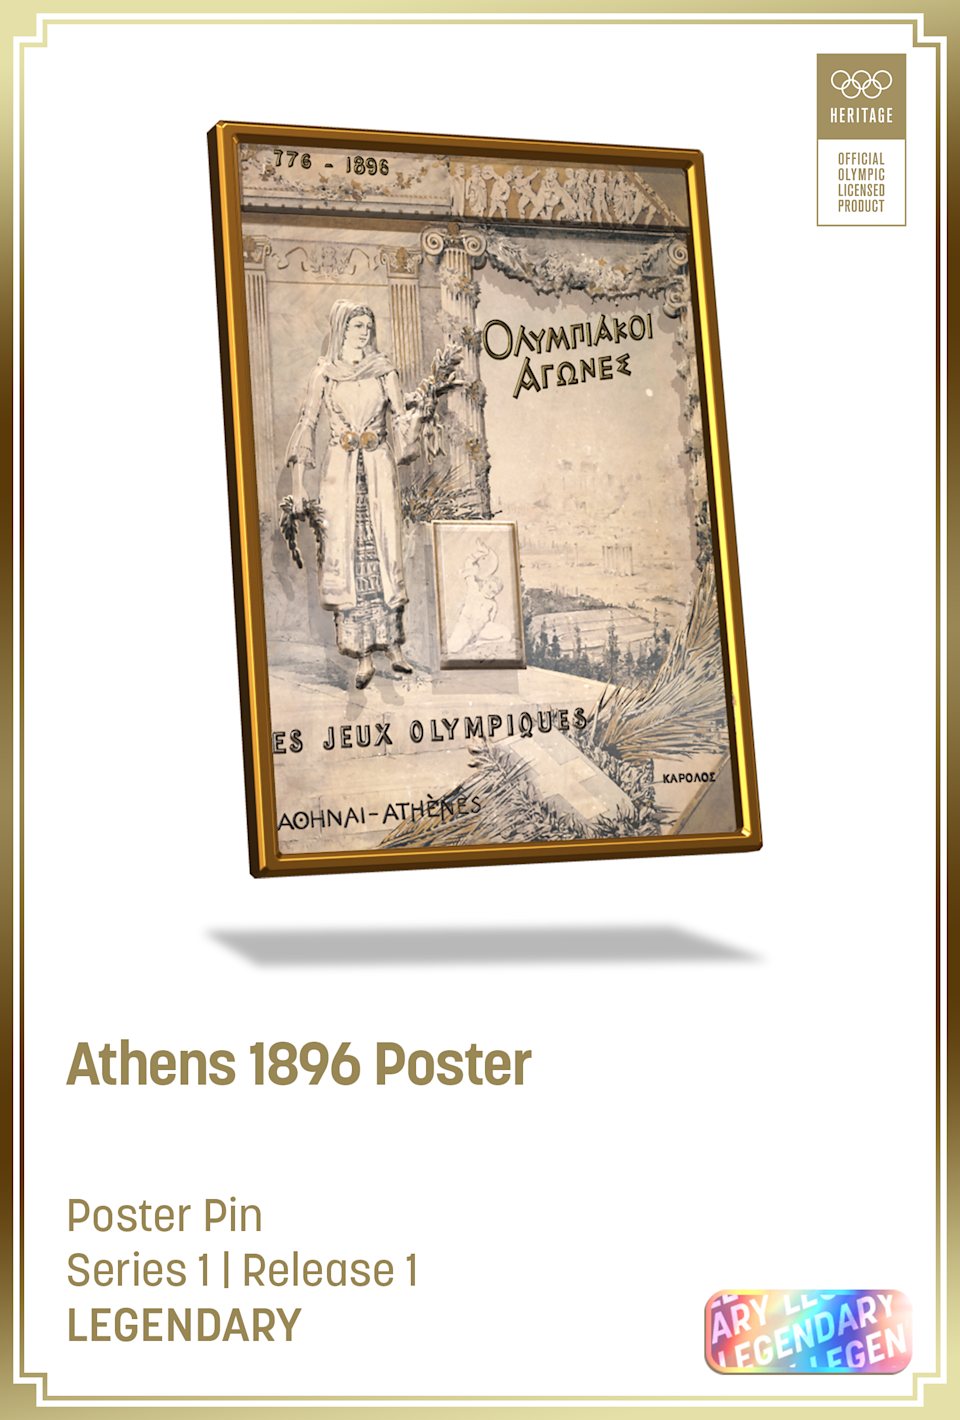 """A """"legendary"""" series pin of a poster from the 1896 Athens Games."""